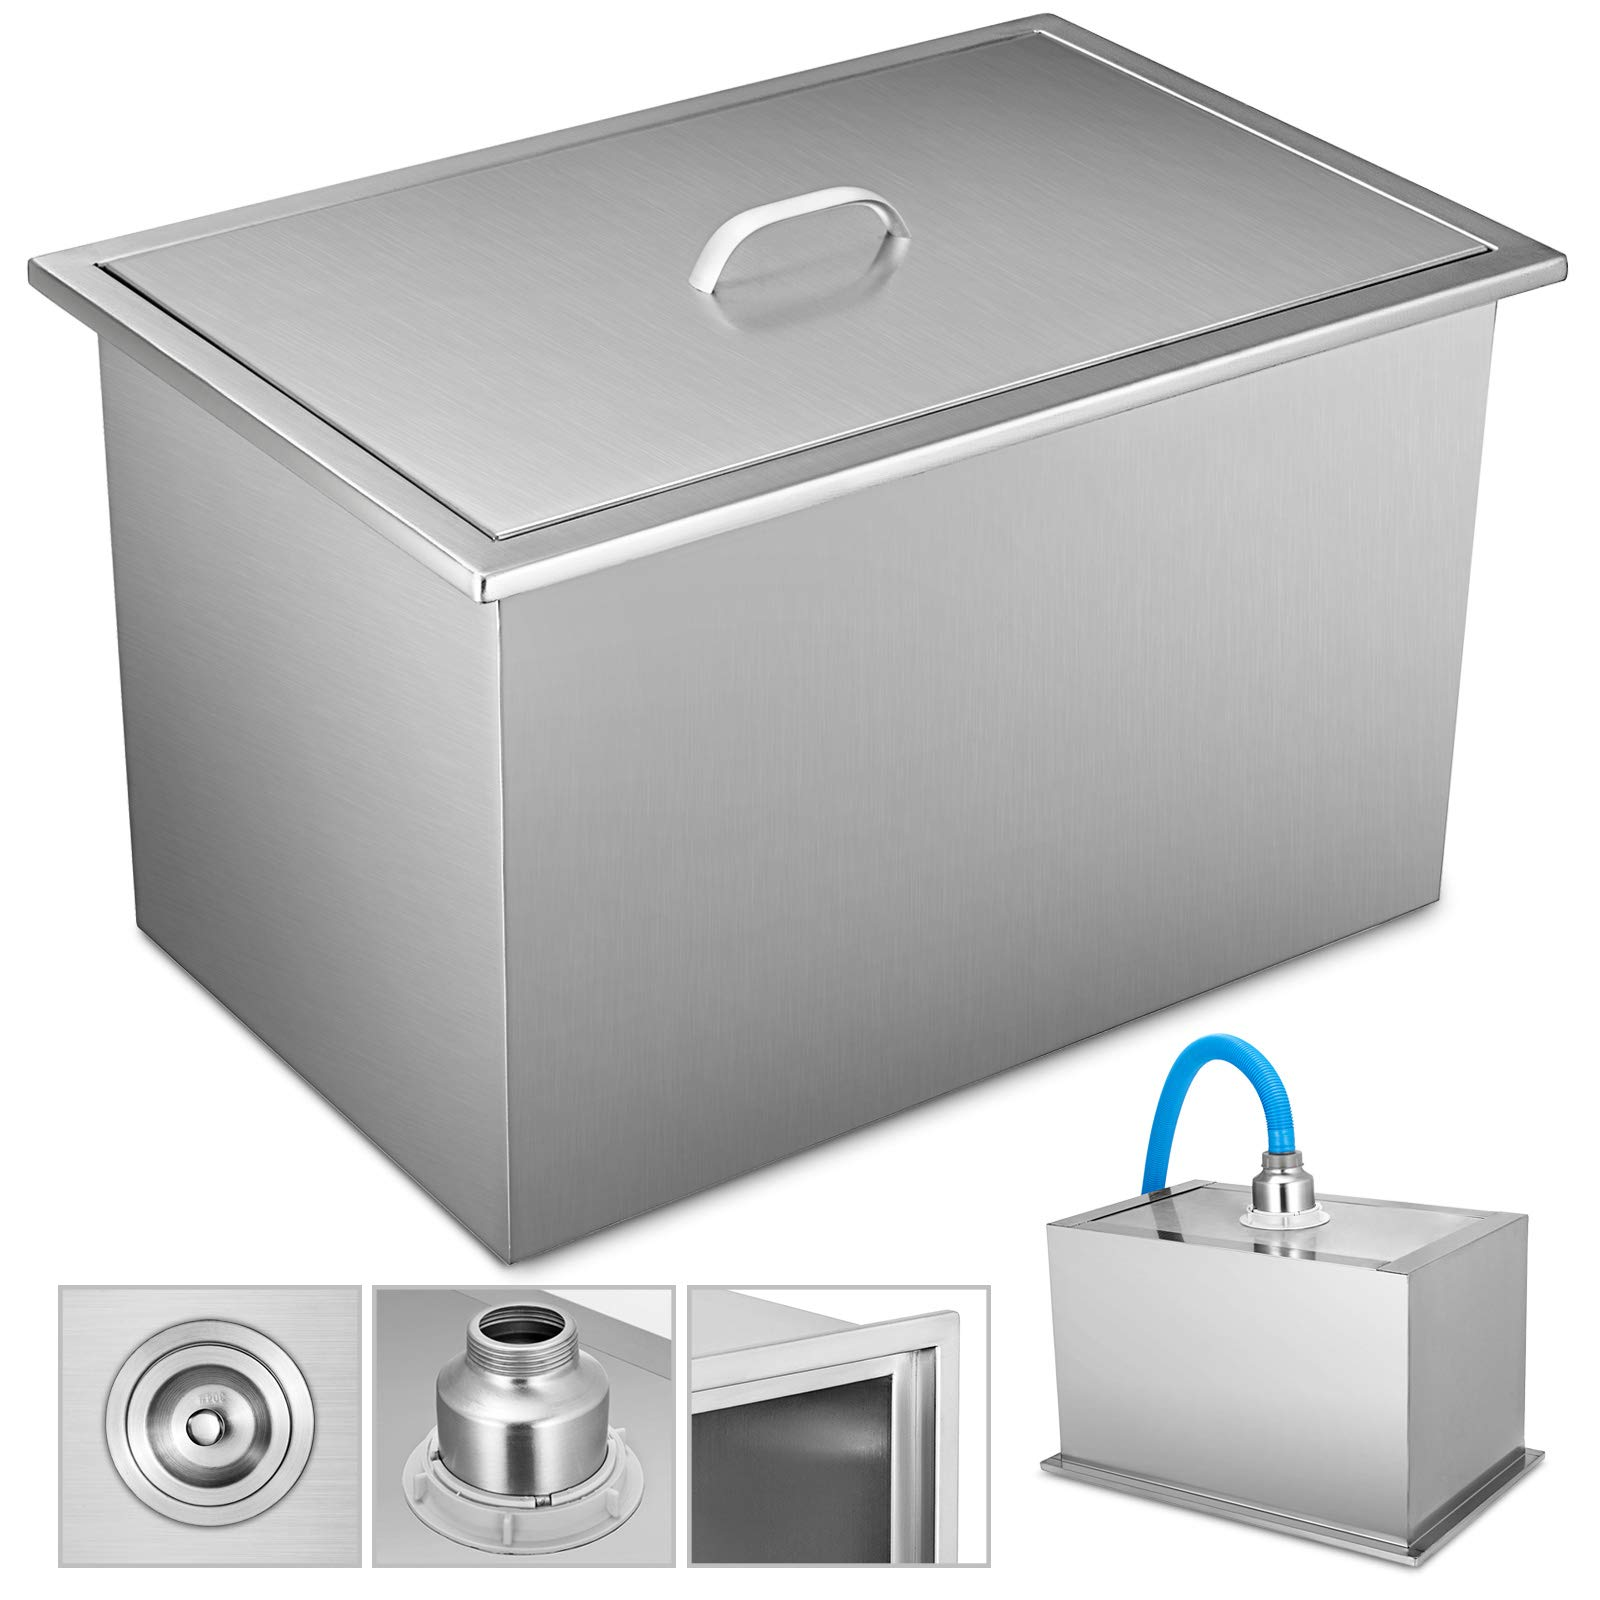 Happybuy Drop in Ice Chest 23x17x12 Inch with Cover 304 Stainless Steel Insulated Wall Drop in Cooler for Wine Beer Juice by Happybuy